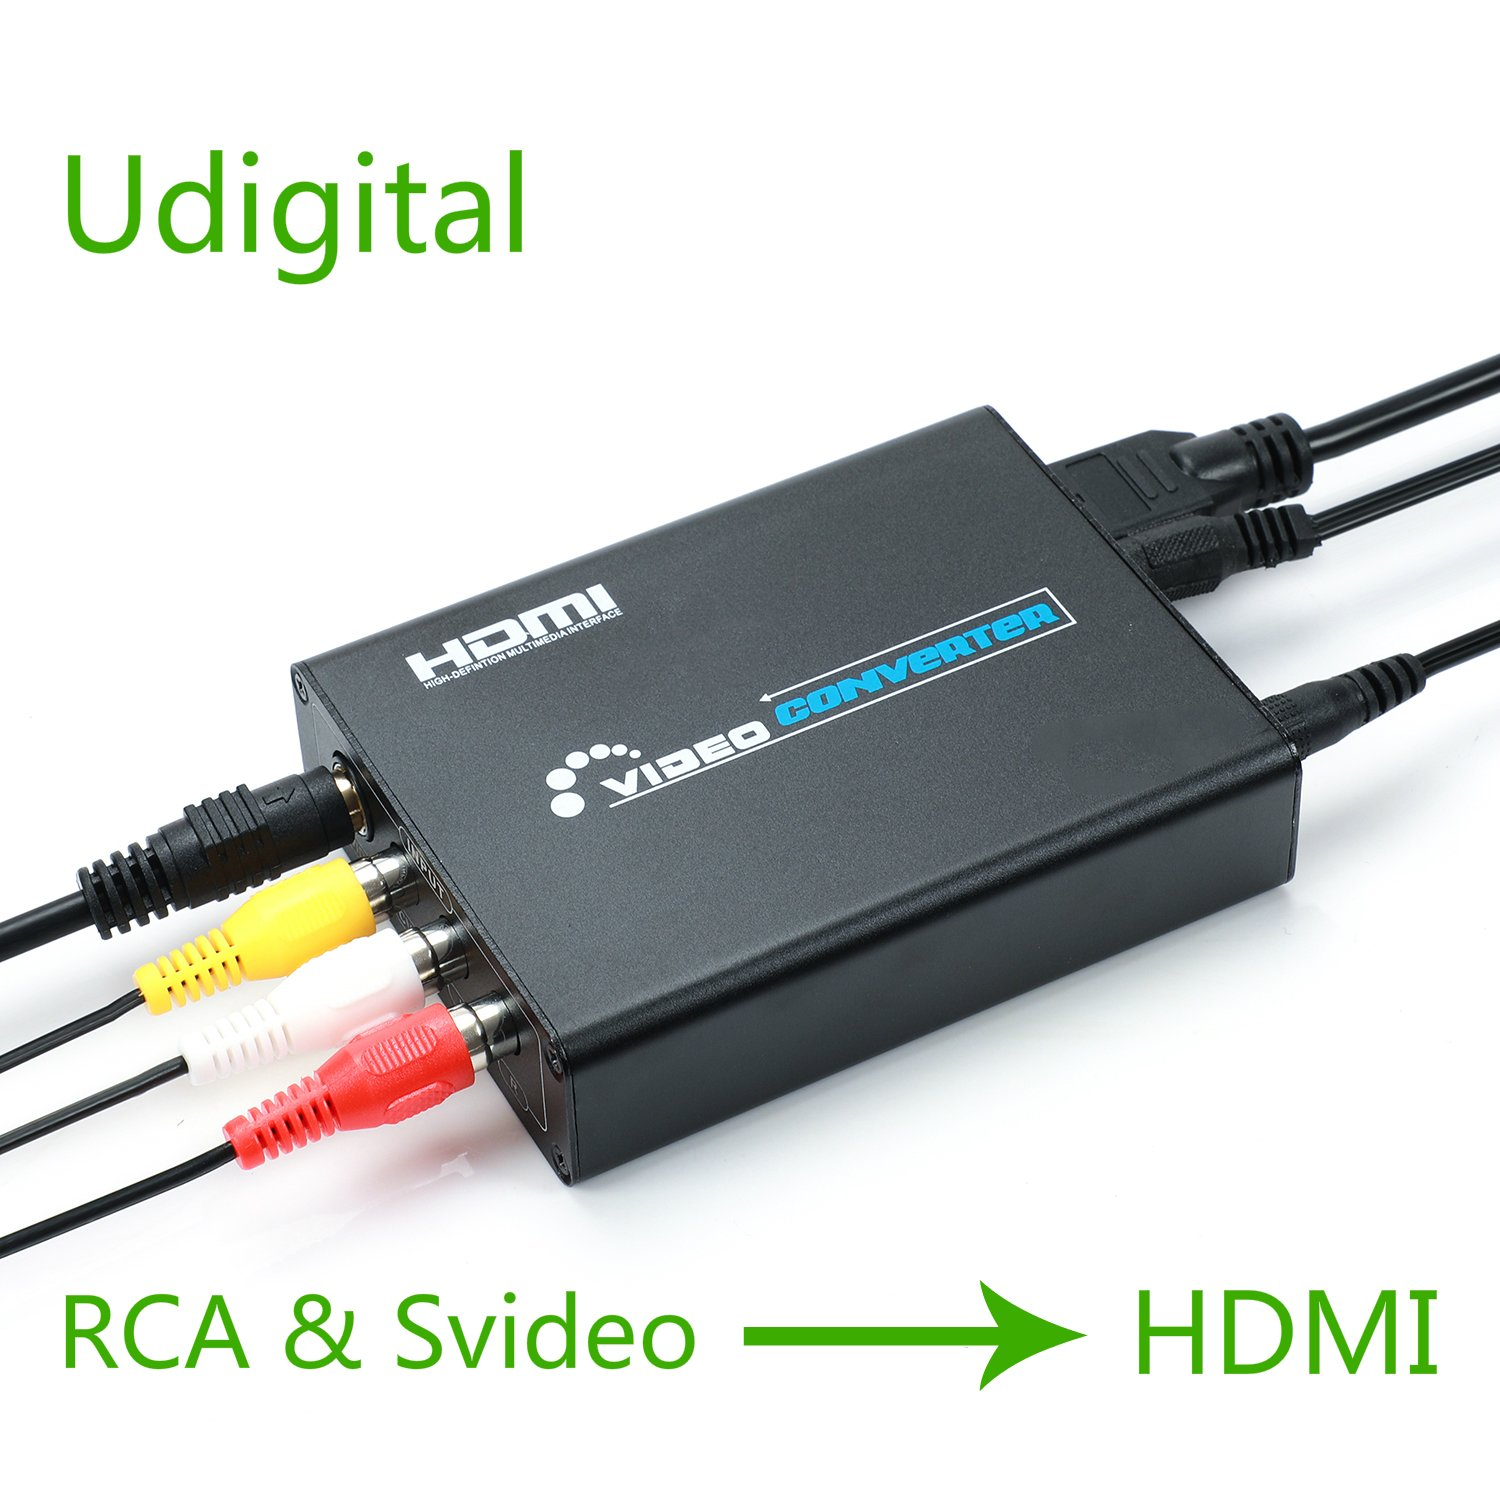 RCA Svideo to HDMI converter adapter,Udigital 3RCA AV CVBS Composite SVideo RL Audio to HDMI Converter Adapter Upscaler Support 720P/1080P N64 Sega Genesis?